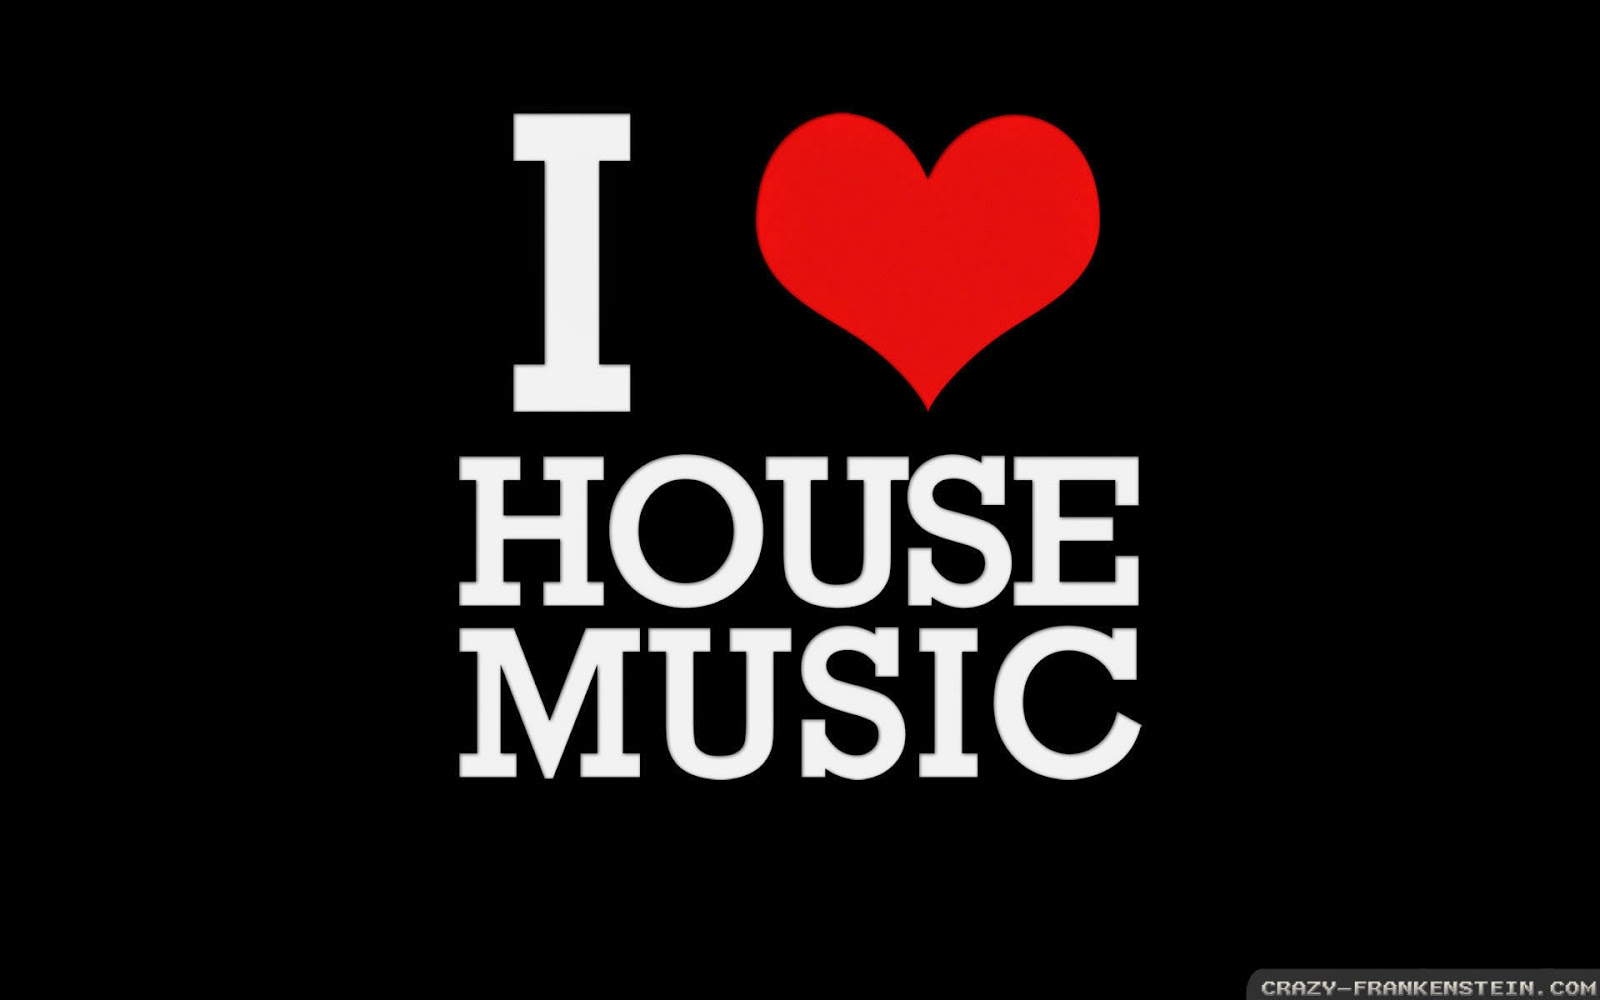 Download Wallpaper House Music Electro Dance Music Feact